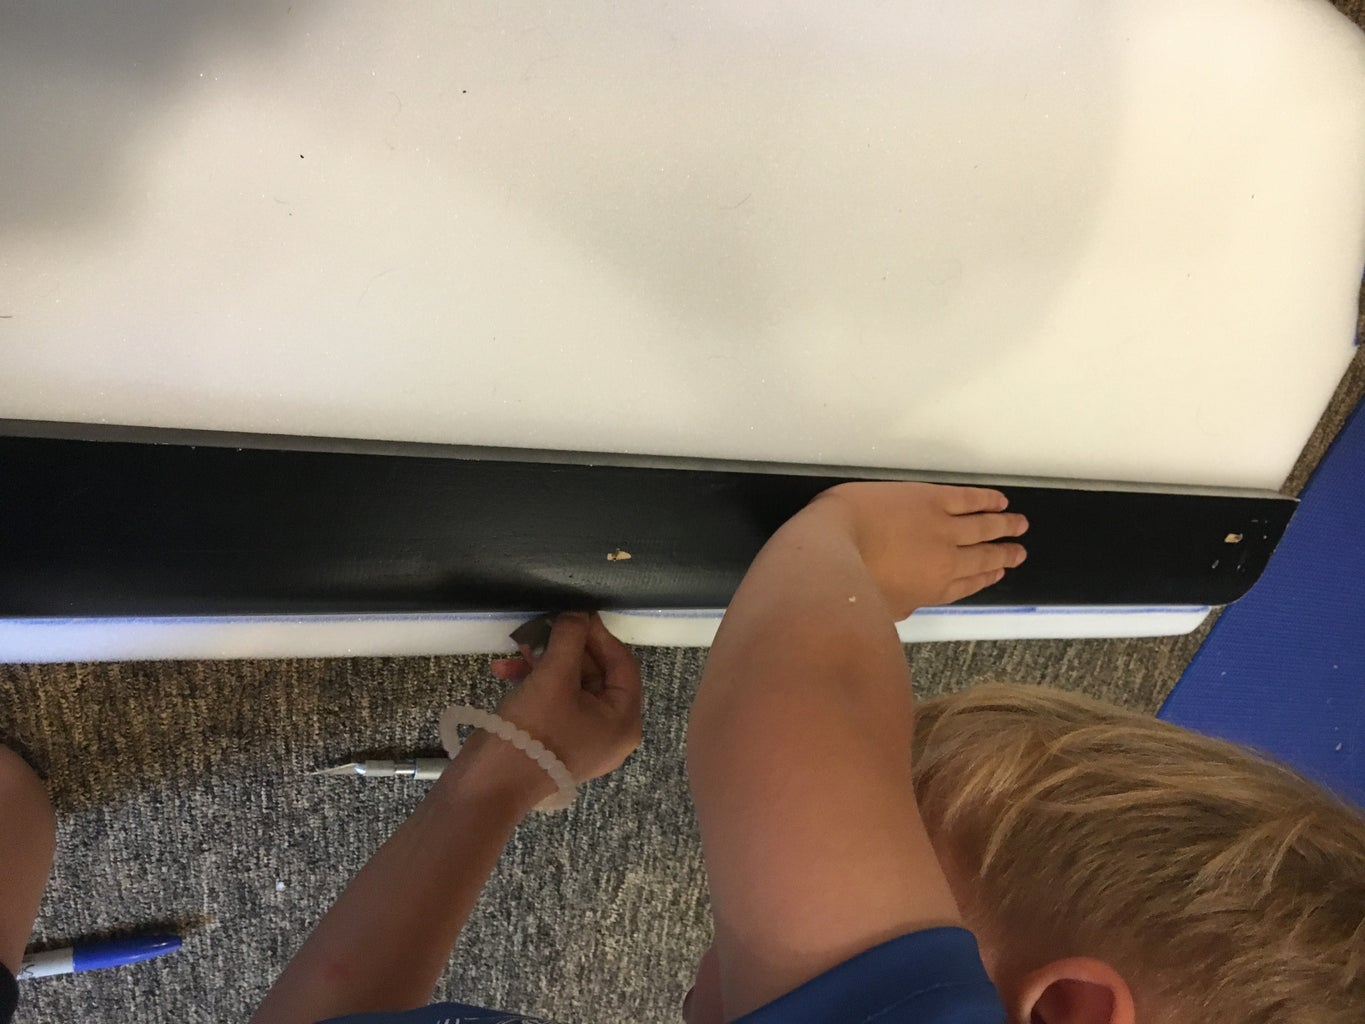 Making the Insert Fit